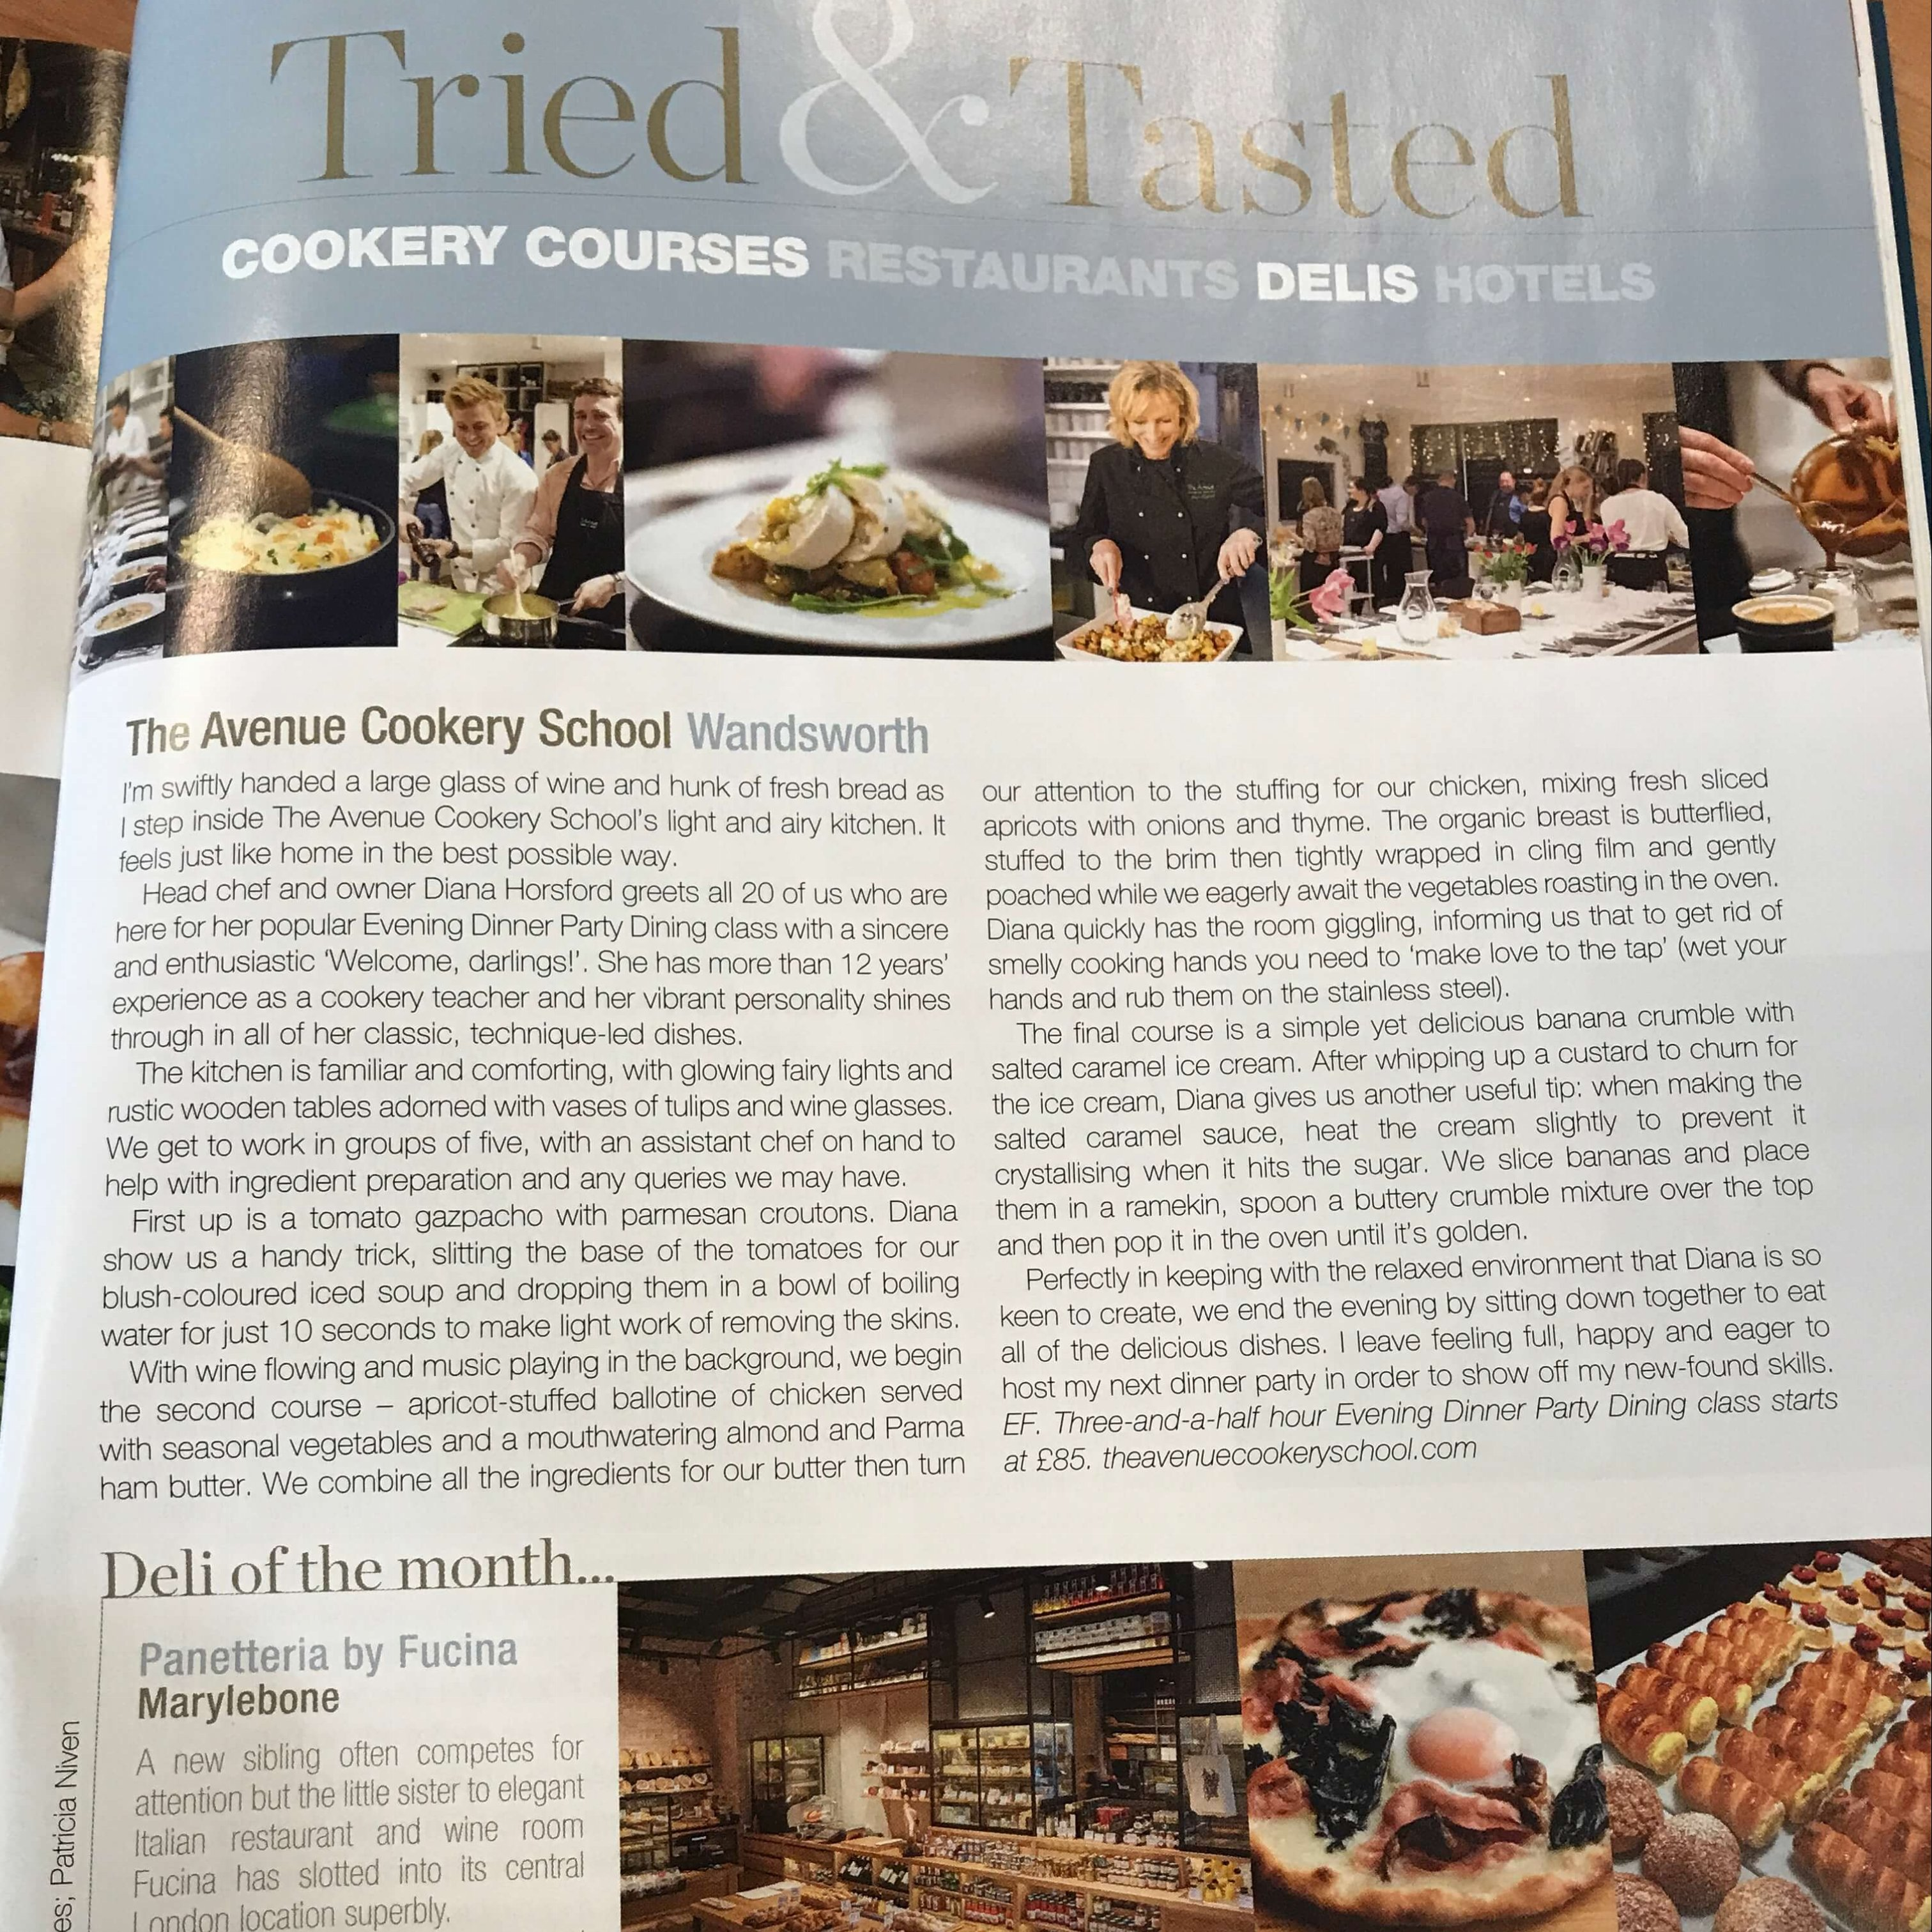 Review in Food and Travel Magazine